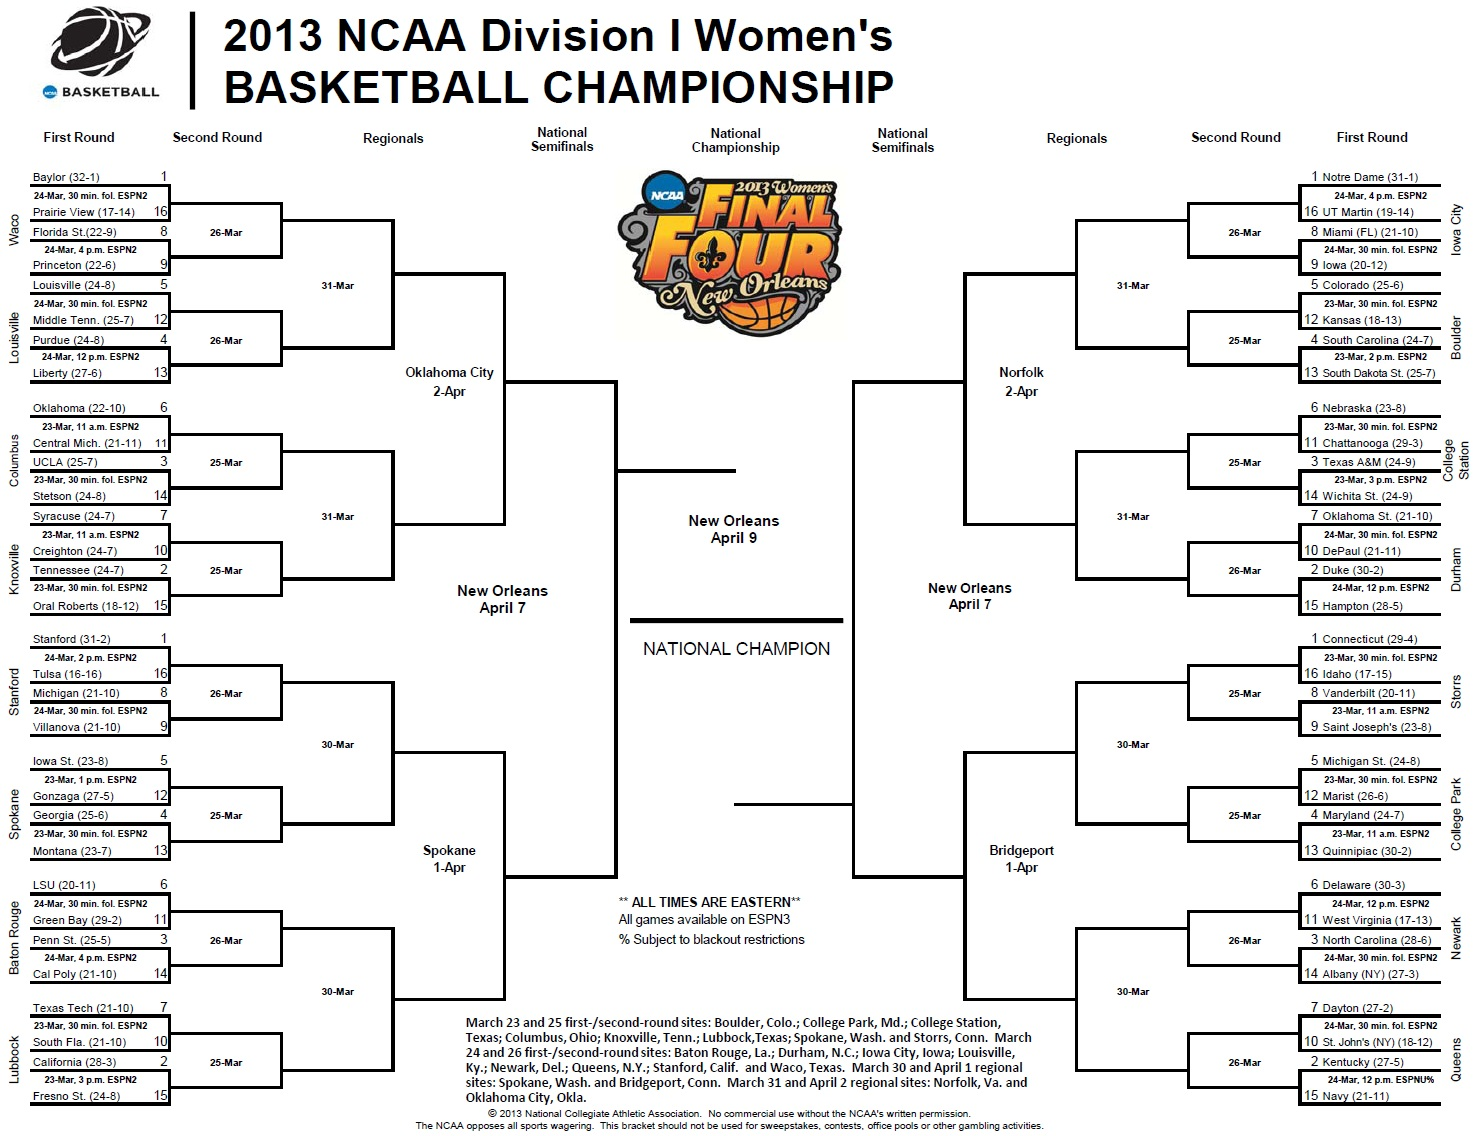 2003 NCAA Division I Mens Basketball Tournament